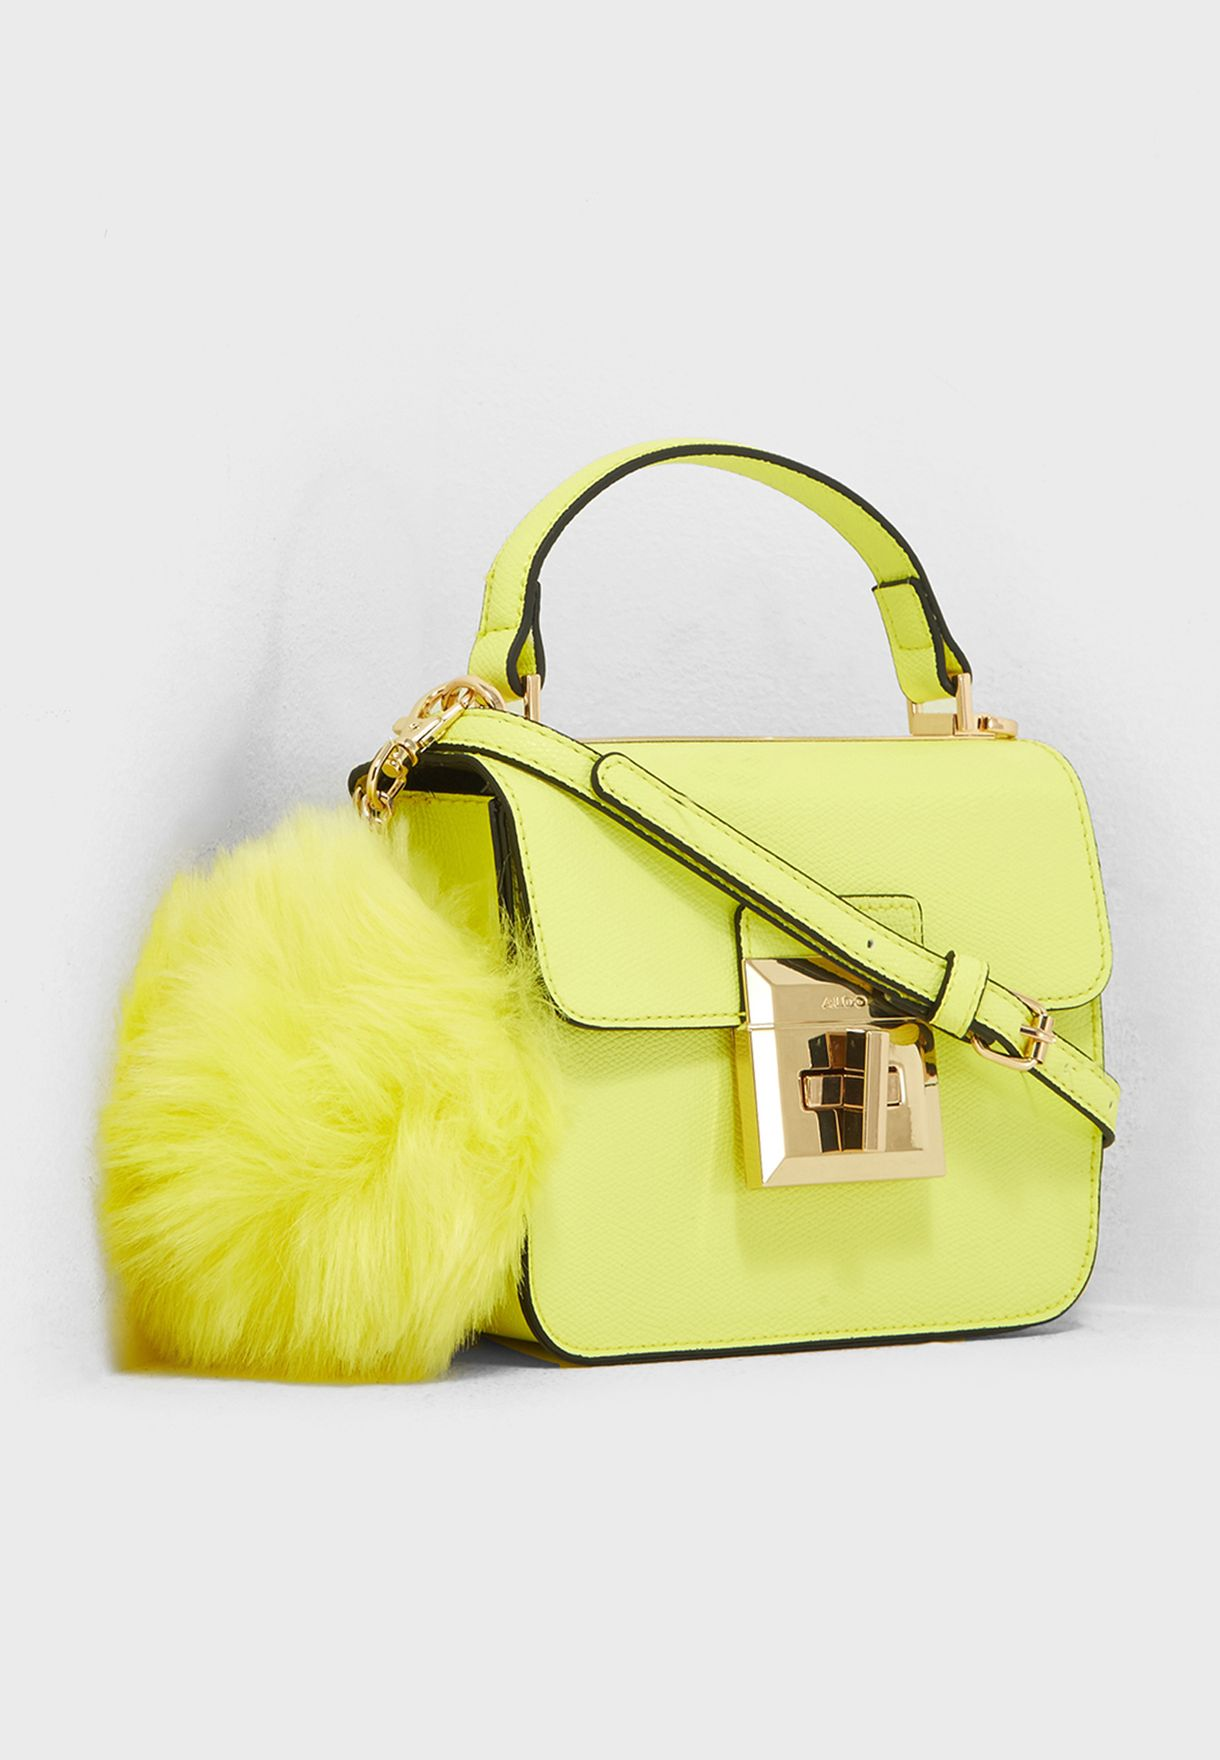 36dc89b1bc4 Shop Aldo yellow Chiadda Mini Pom Pom Satchel CHIADDA67 for Women in ...